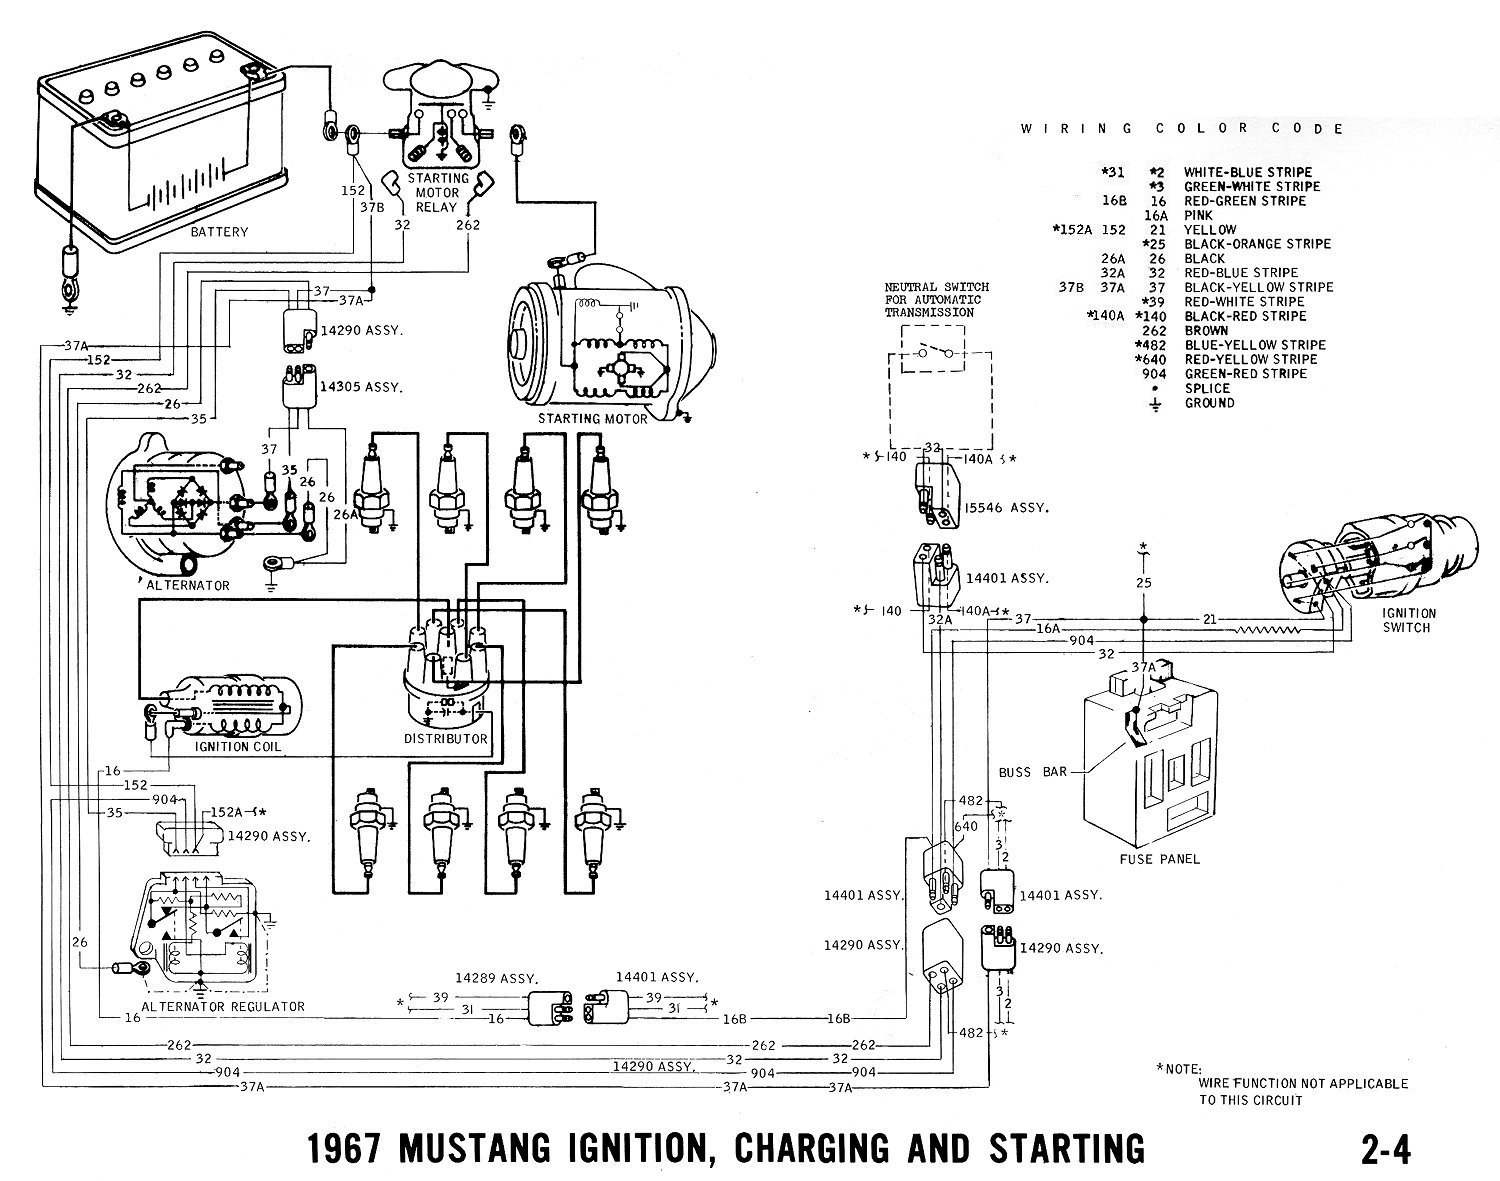 All I have is a '67 wiring diagram. I hope it gives you a general idea